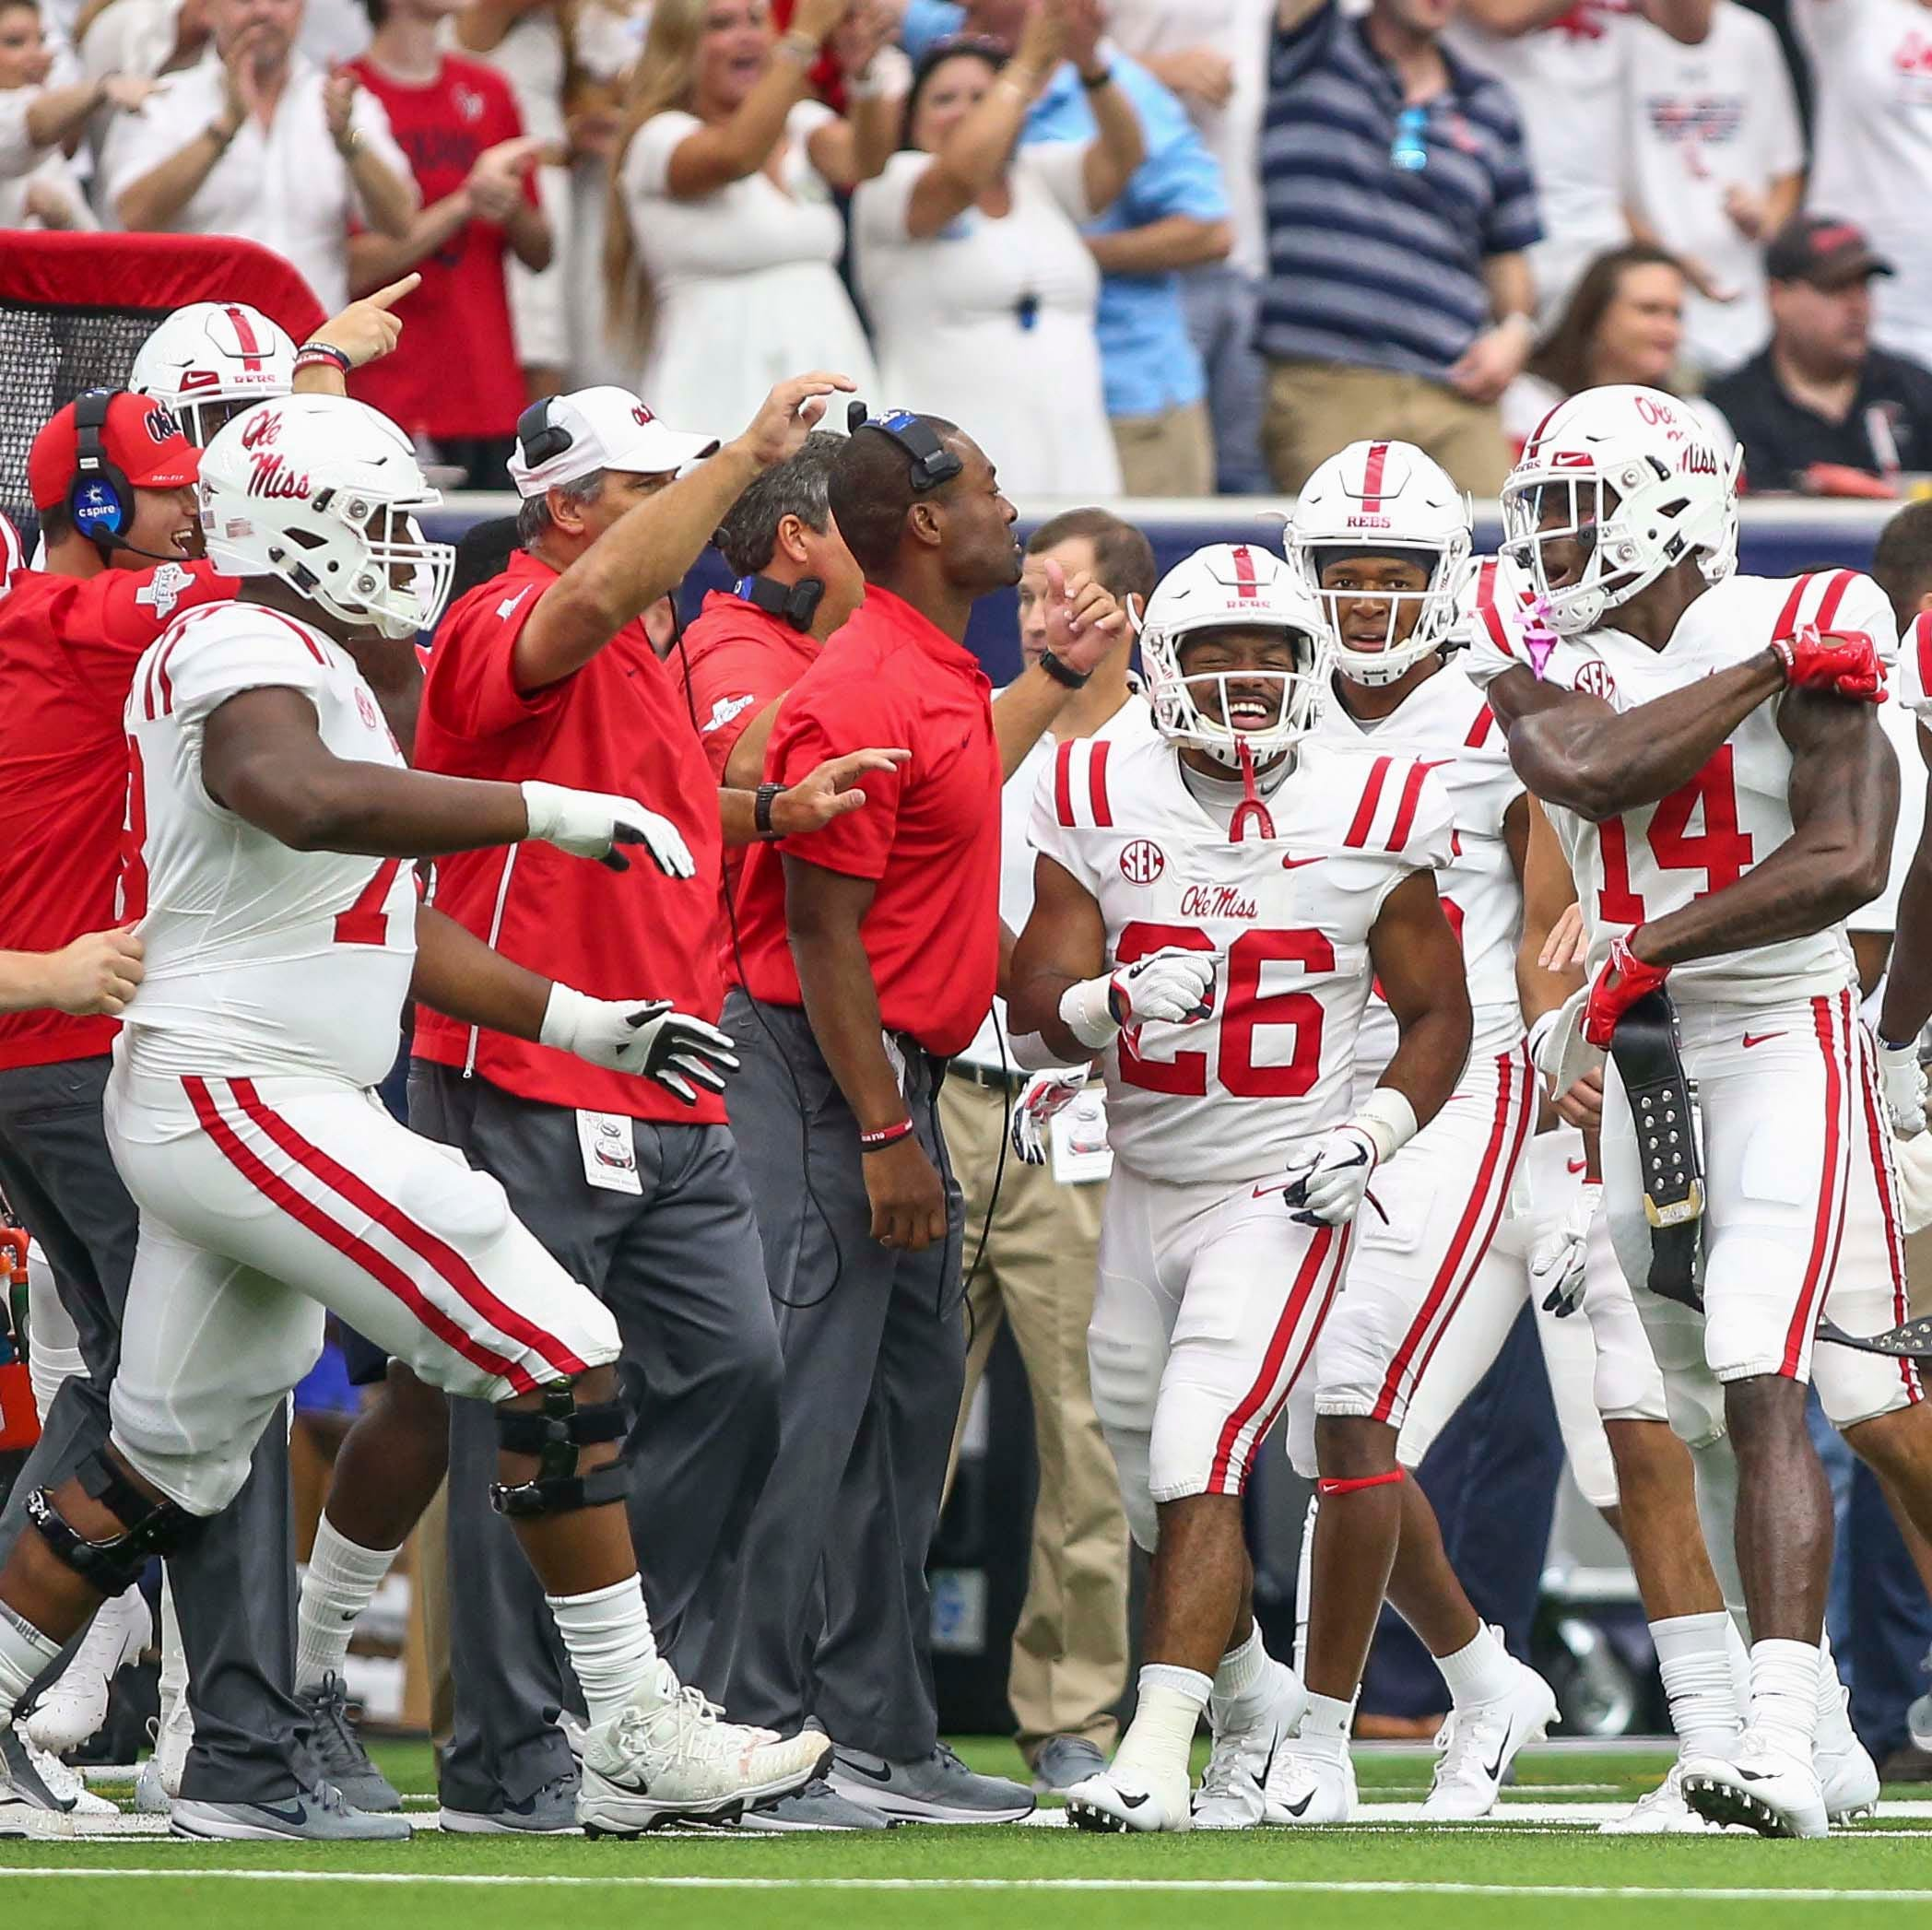 Ole Miss offense bemoans last week's preparation, tries to move on